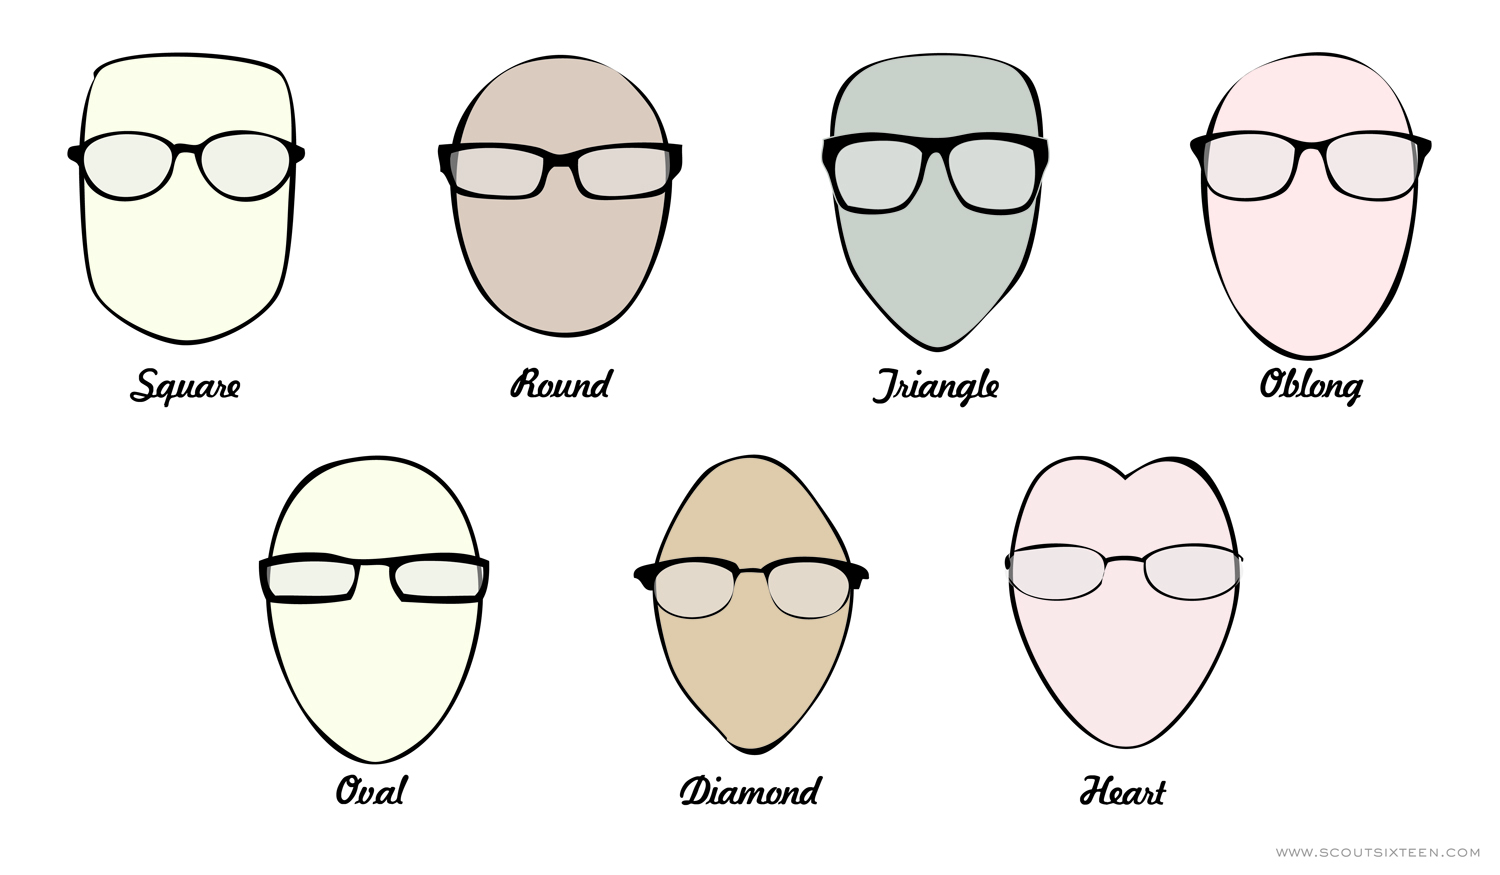 Best Glasses Frames For Narrow Faces : Eyewear Guide: How to Choose the Correct Frames For Your ...